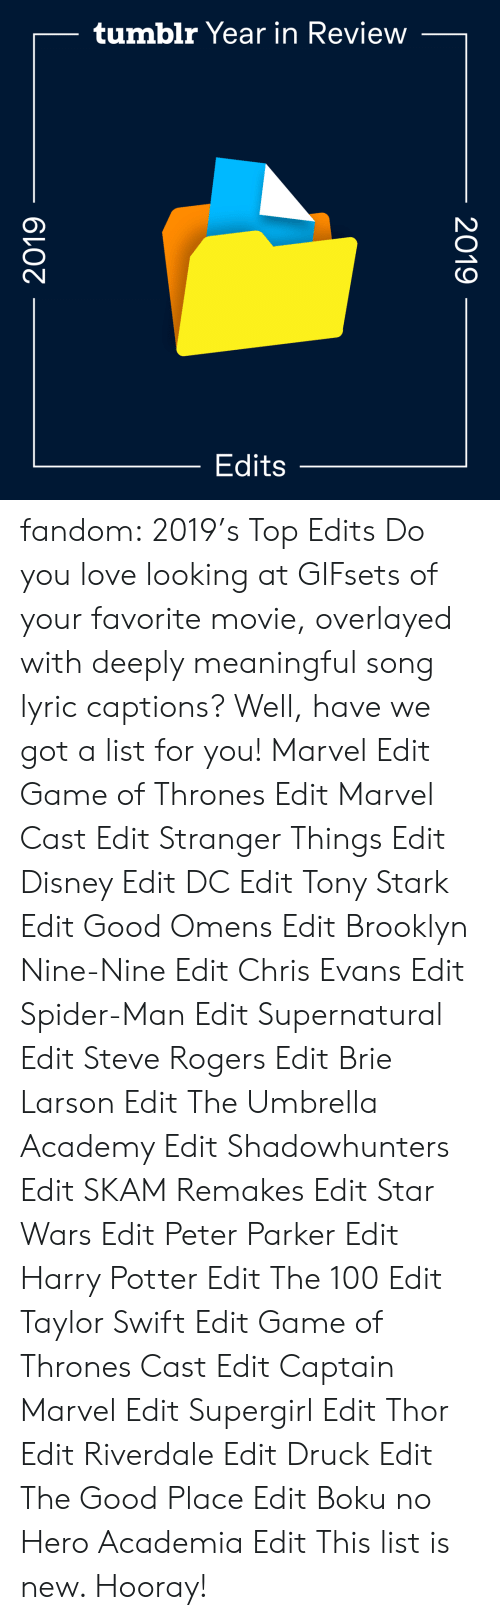 Chris Evans, Disney, and Game of Thrones: tumblr Year in Review  Edits  2019  2019 fandom:  2019's Top Edits  Do you love looking at GIFsets of your favorite movie, overlayed with deeply meaningful song lyric captions? Well, have we got a list for you!  Marvel Edit  Game of Thrones Edit  Marvel Cast Edit  Stranger Things Edit  Disney Edit  DC Edit  Tony Stark Edit  Good Omens Edit  Brooklyn Nine-Nine Edit  Chris Evans Edit  Spider-Man Edit  Supernatural Edit  Steve Rogers Edit  Brie Larson Edit  The Umbrella Academy Edit  Shadowhunters Edit  SKAM Remakes Edit  Star Wars Edit  Peter Parker Edit  Harry Potter Edit  The 100 Edit  Taylor Swift Edit  Game of Thrones Cast Edit  Captain Marvel Edit  Supergirl Edit  Thor Edit  Riverdale Edit  Druck Edit  The Good Place Edit  Boku no Hero Academia Edit This list is new. Hooray!